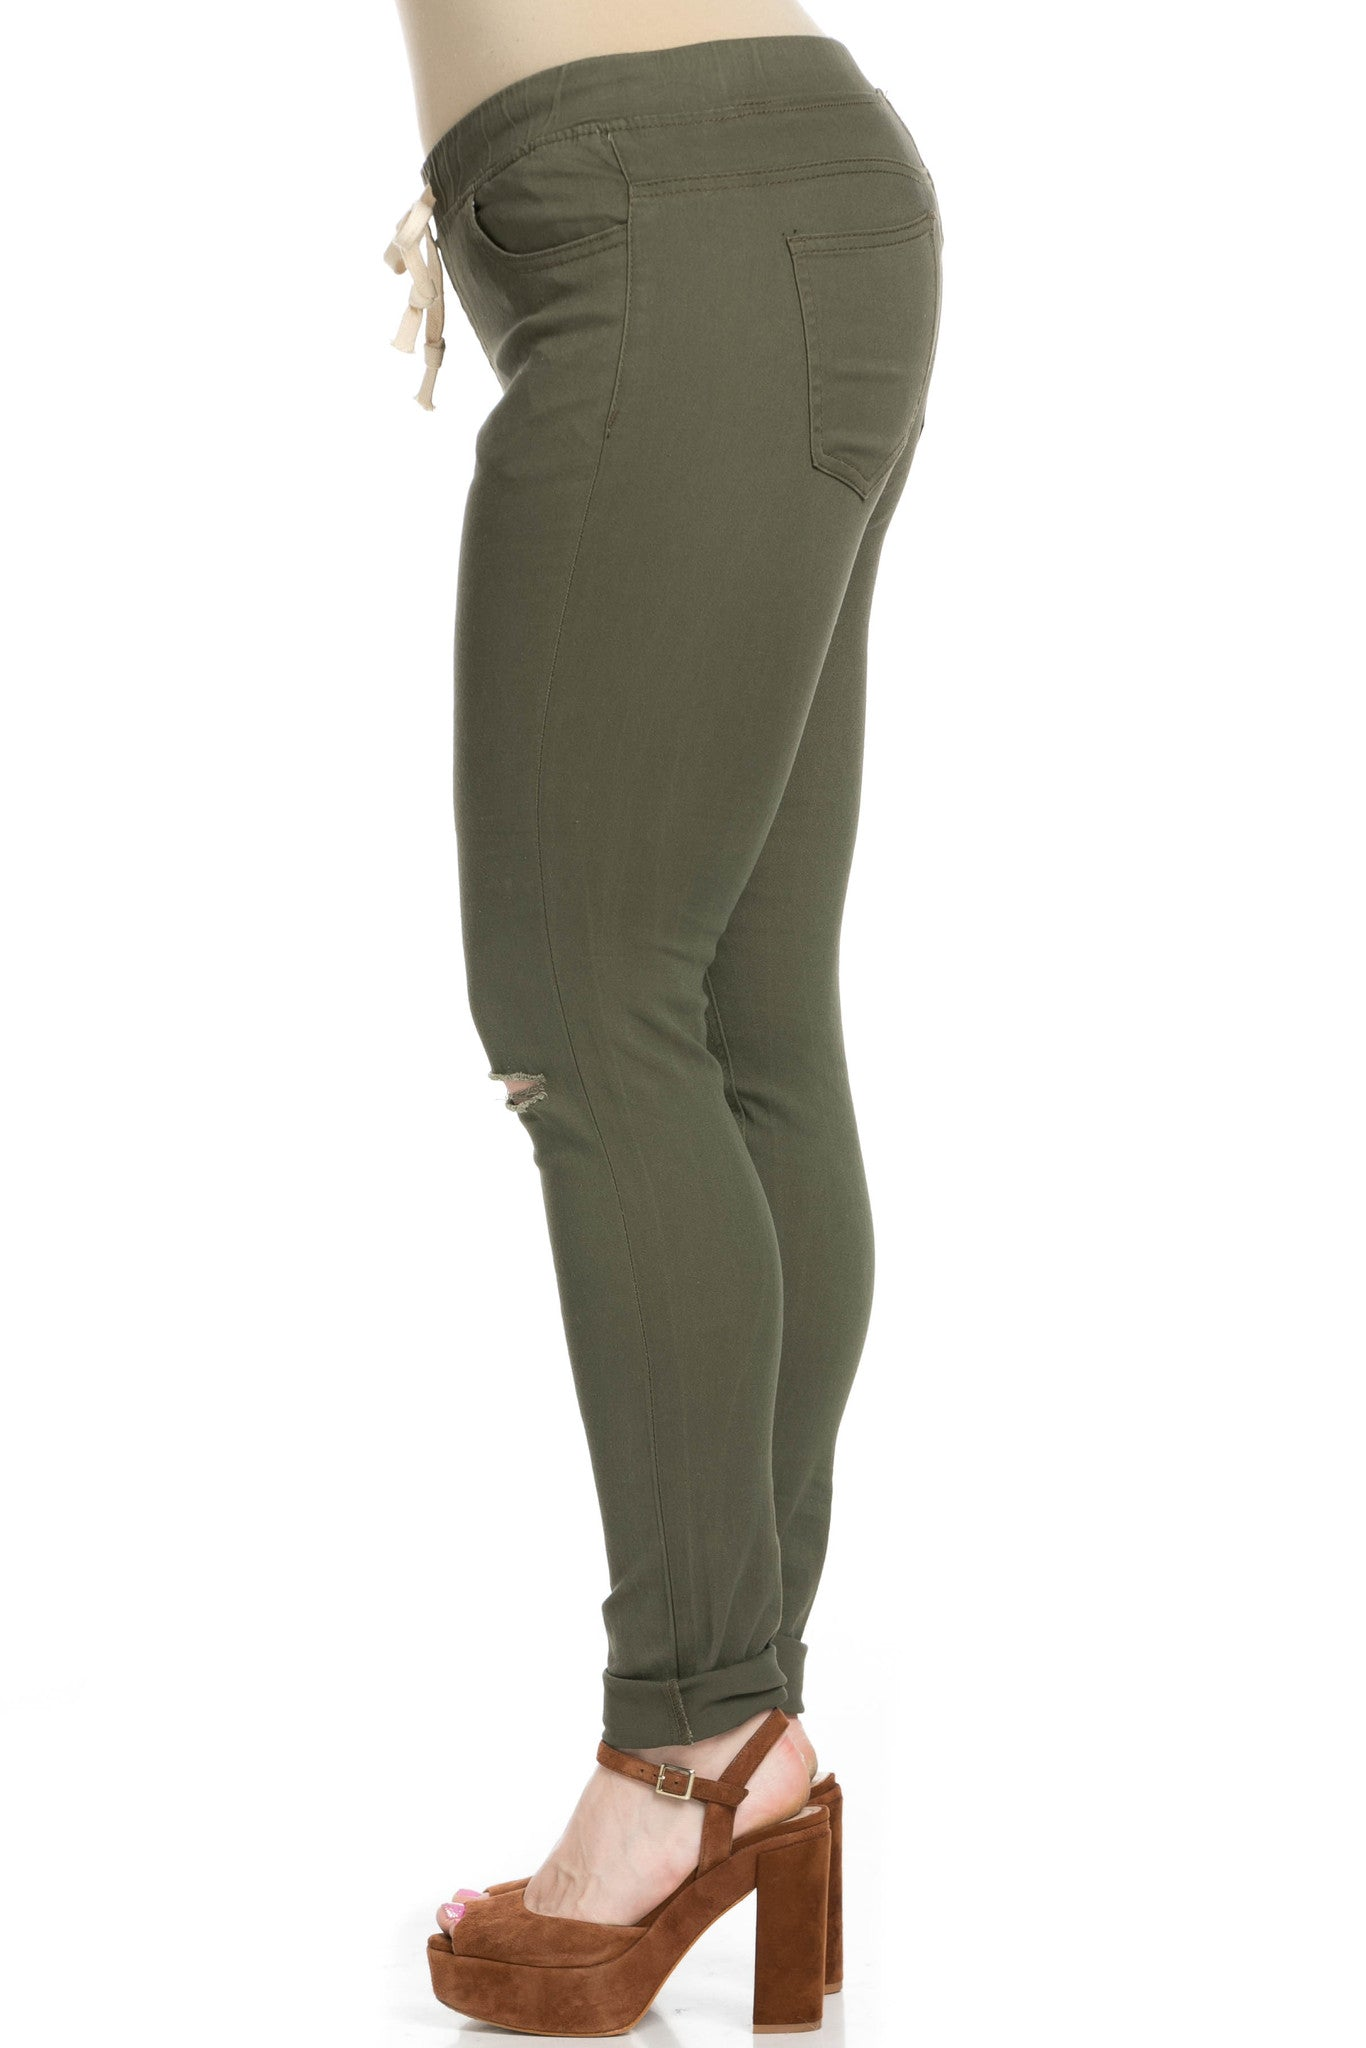 Destroyed Olive Skinny Jogger Jeans - Pants - My Yuccie - 14